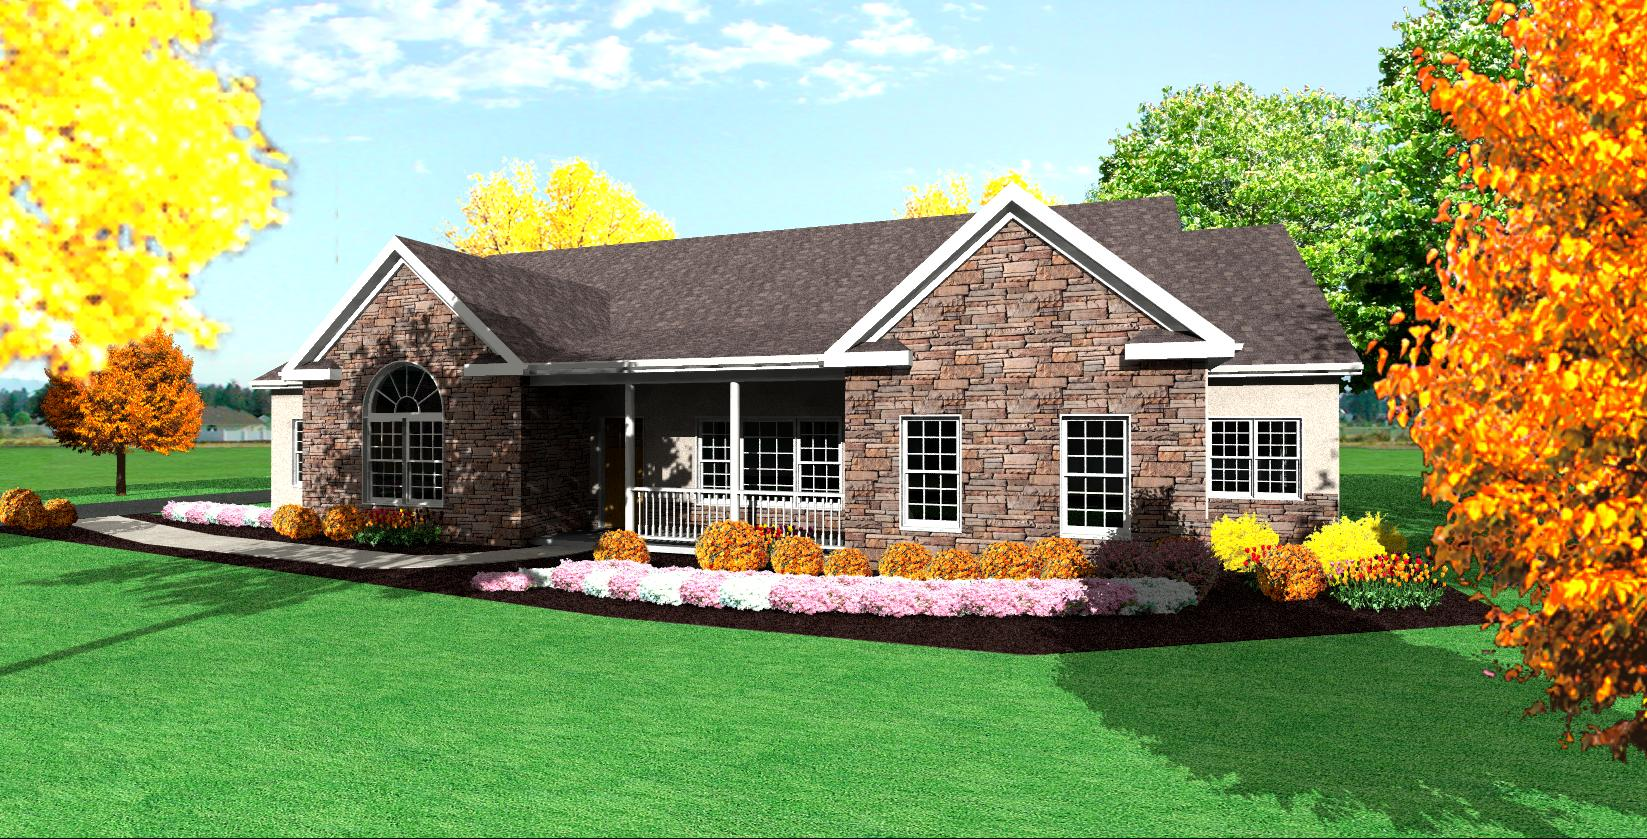 Single story ranch house plans find house plans for Find house plans